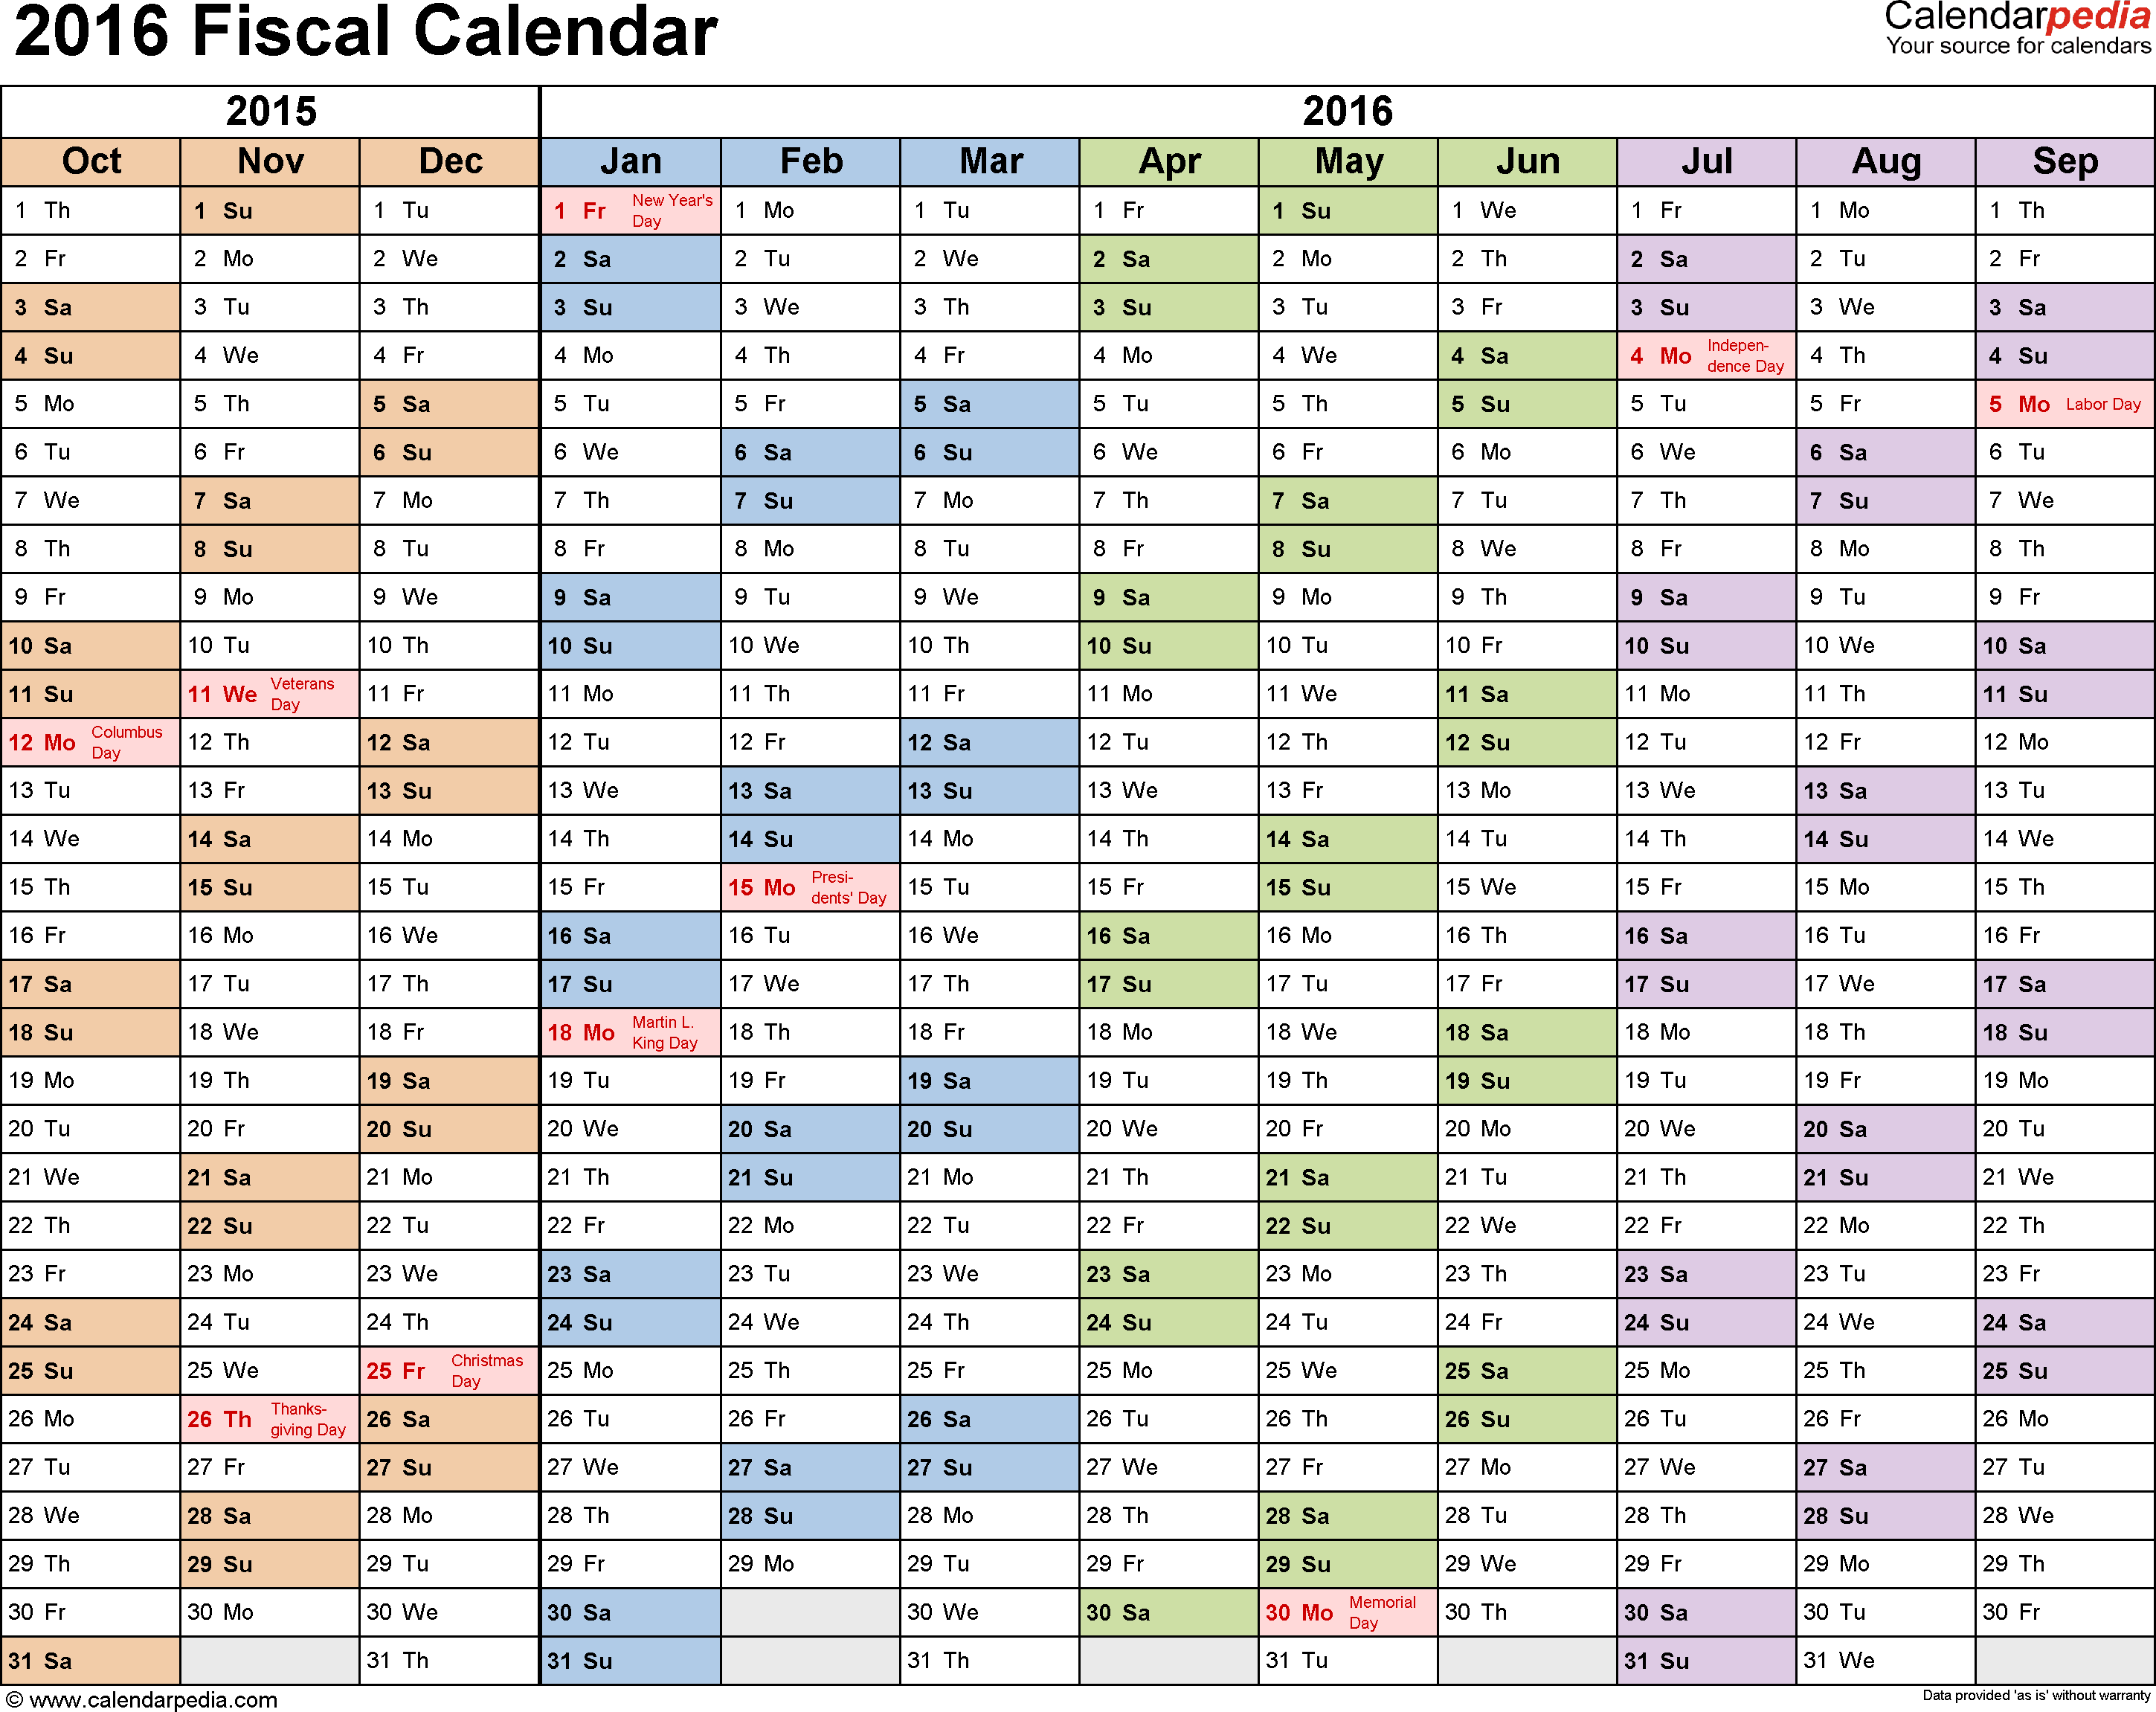 Download Template 1: Fiscal year calendar 2016 in PDF format, landscape, 1 page